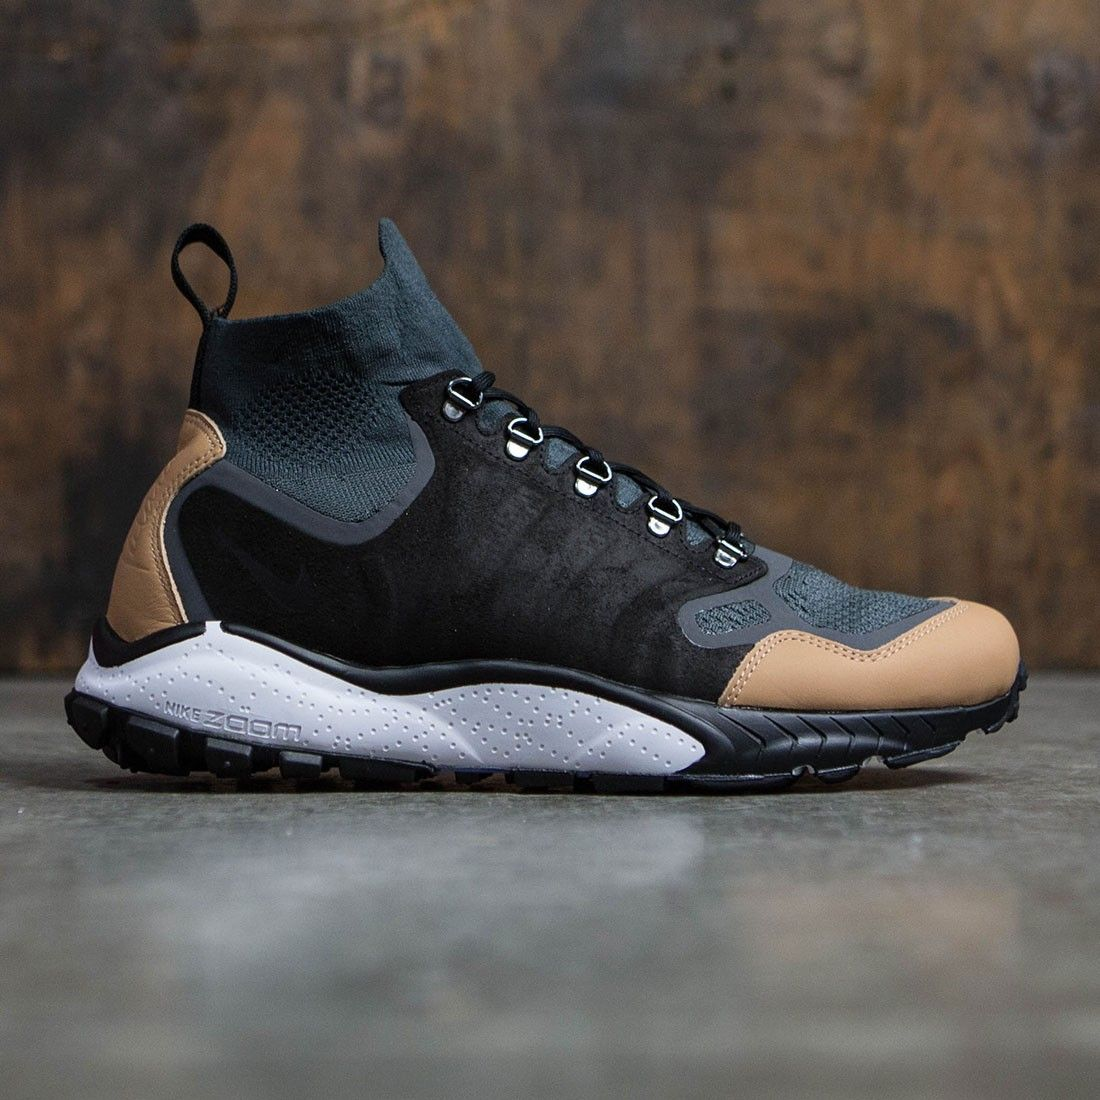 official photos 4358a 92fb1 Inspired by the classic  90s shoe, Men s Nike Air Zoom Talaria Mid Flyknit  Premium